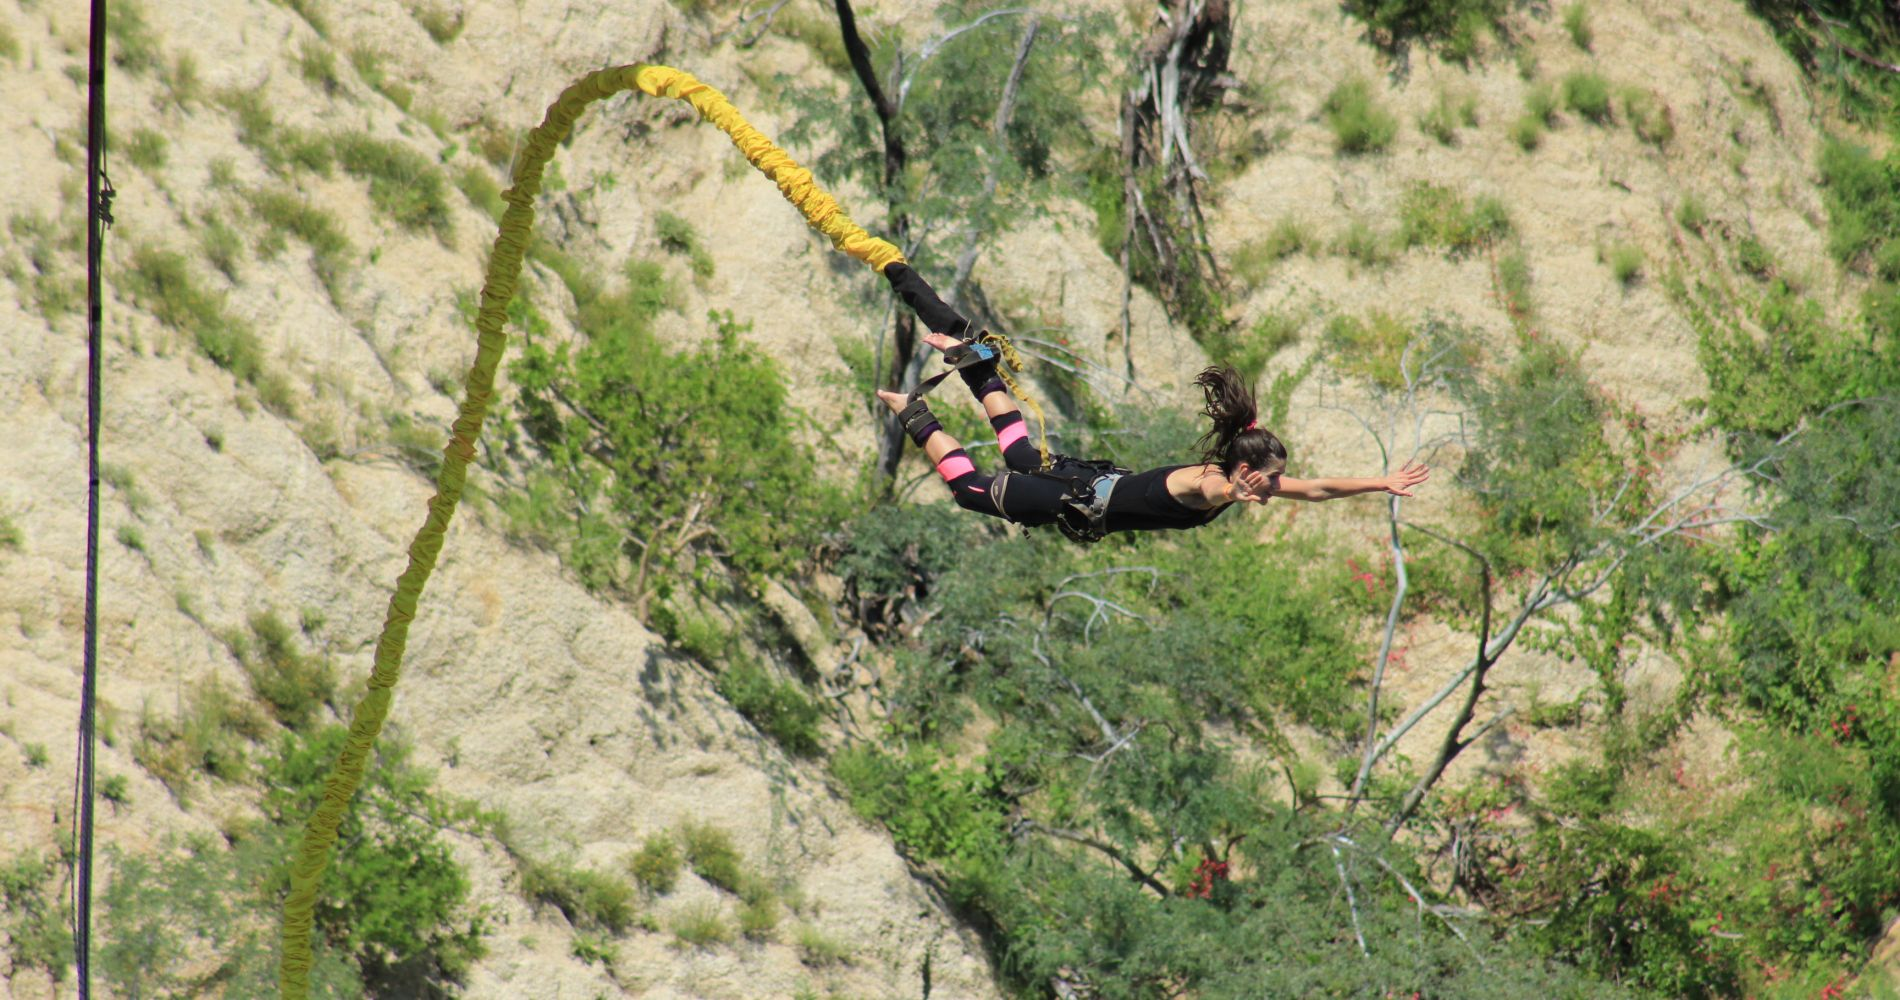 Canyon Jump Glass Floor Gondola Mexico Experience Gifts